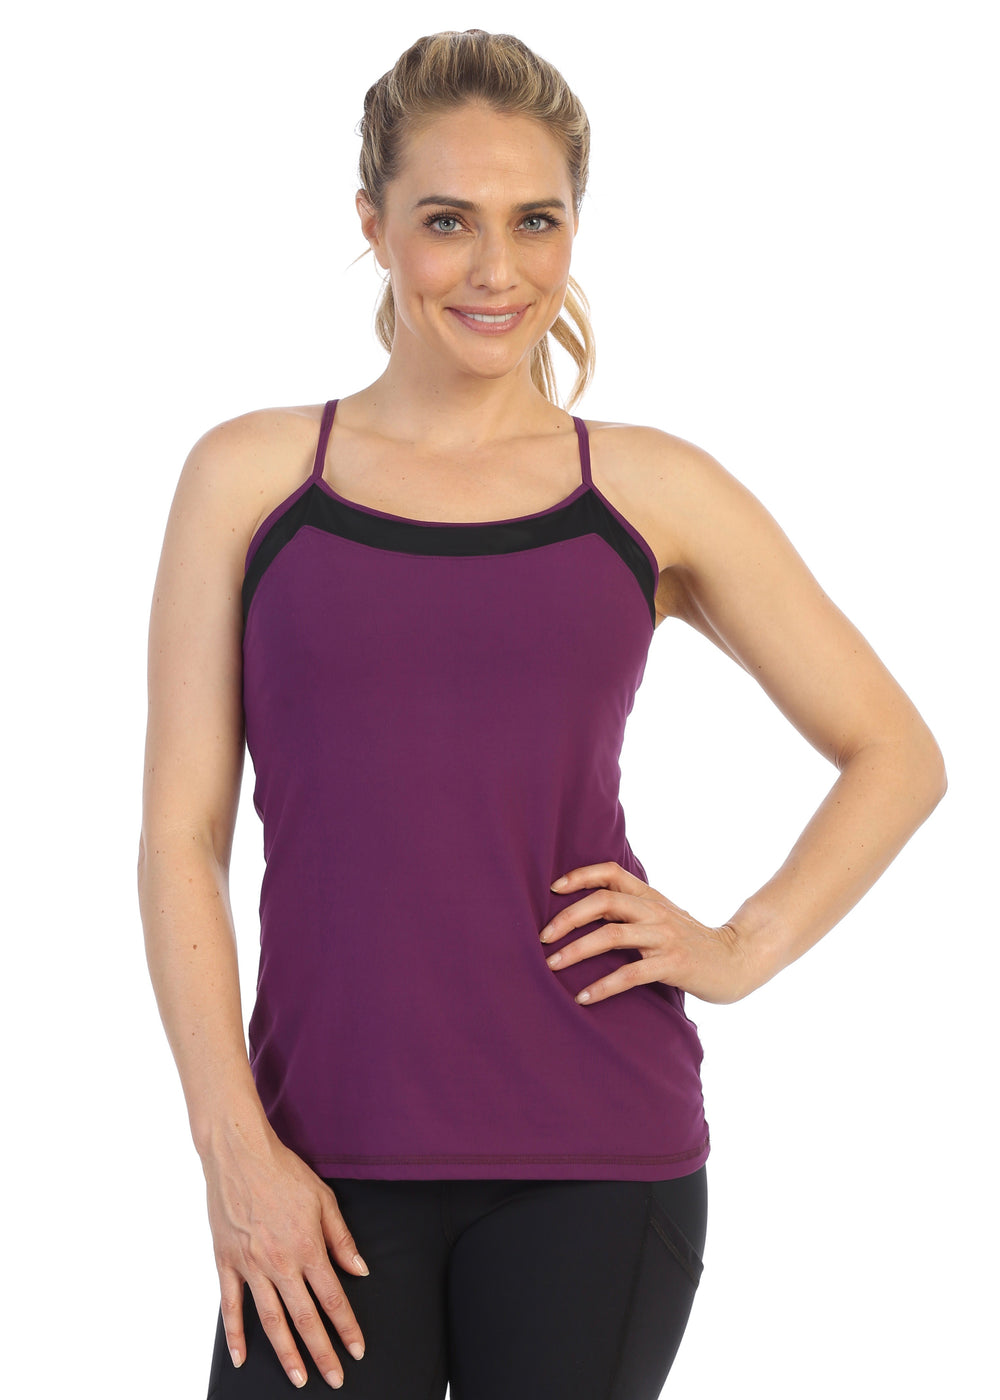 Plum-Racerback Y Built In Bra Workout Top-front image